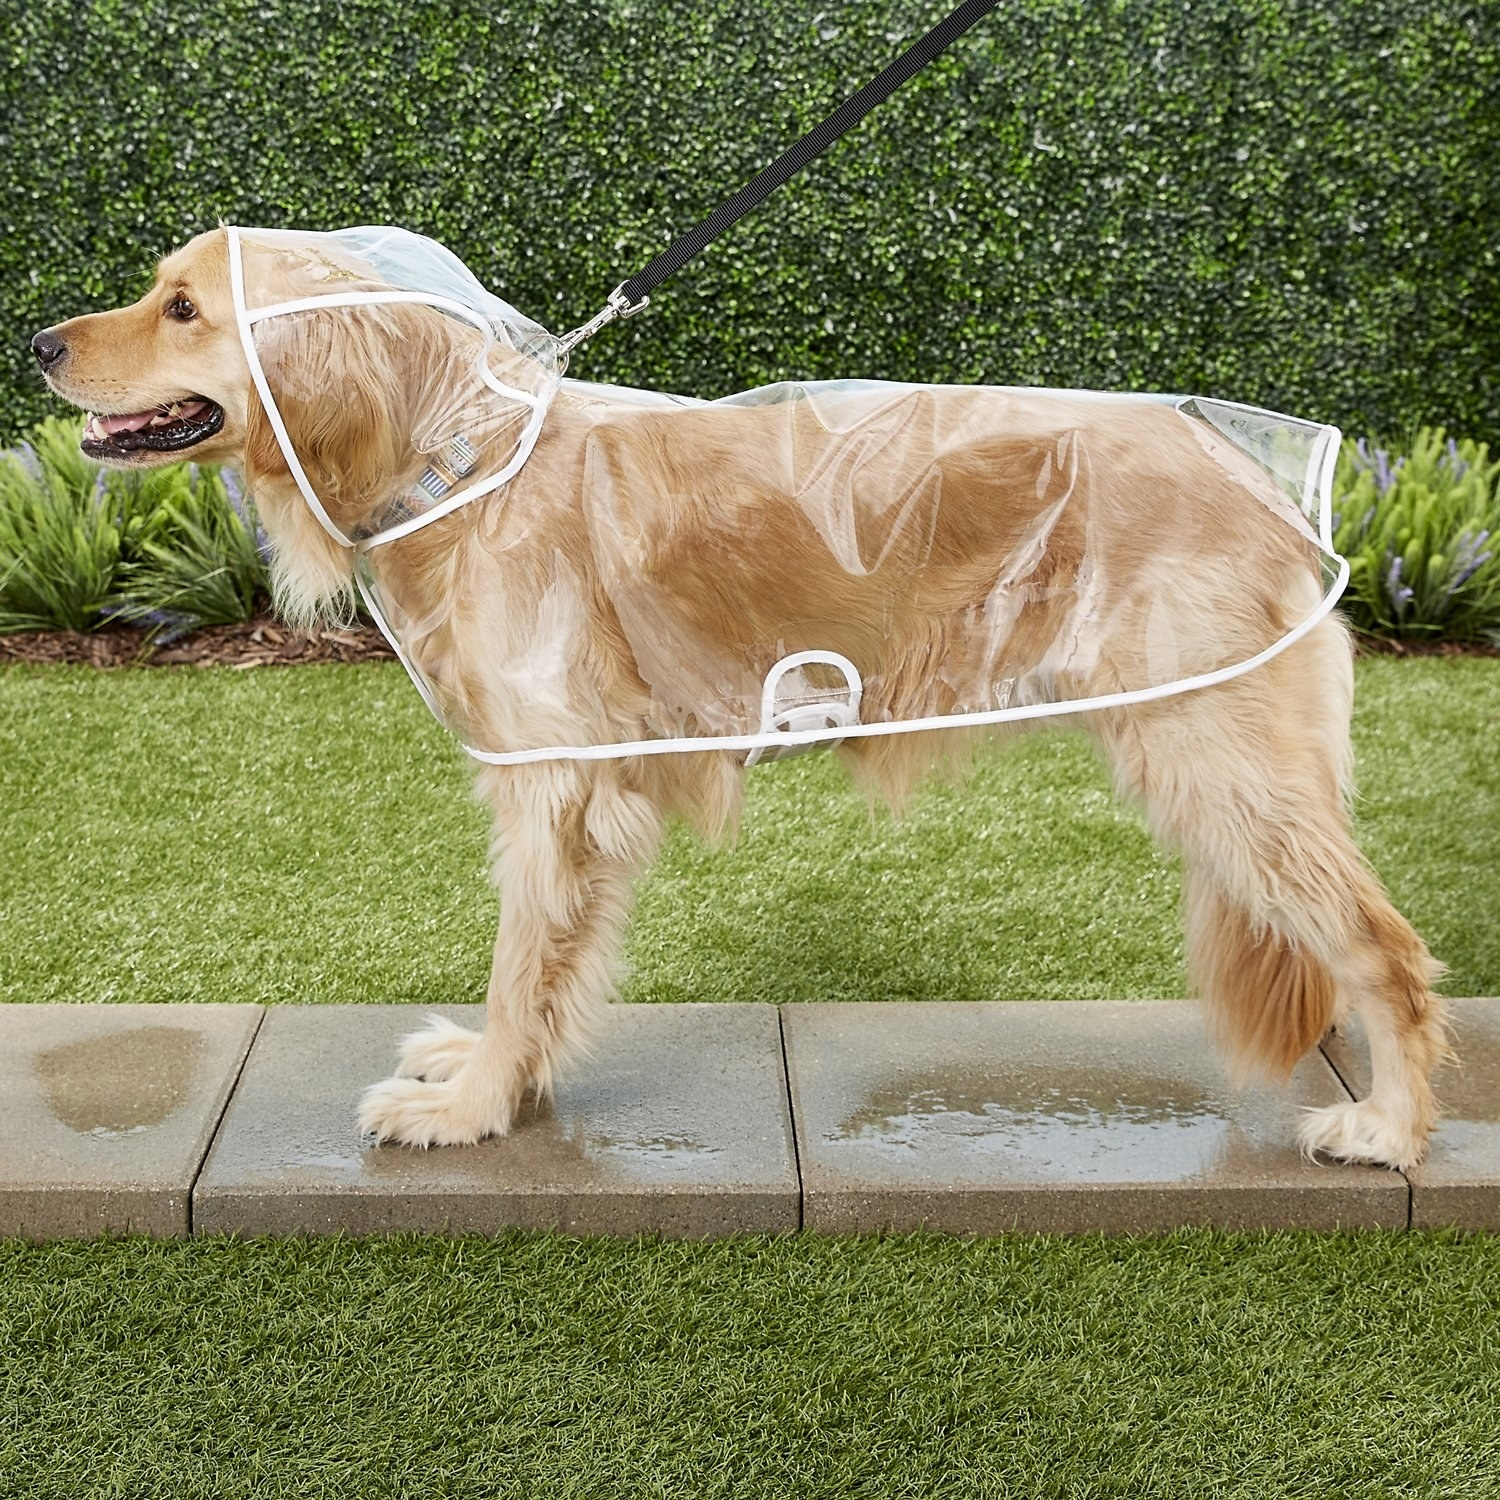 the dog wearing the see-through raincoat